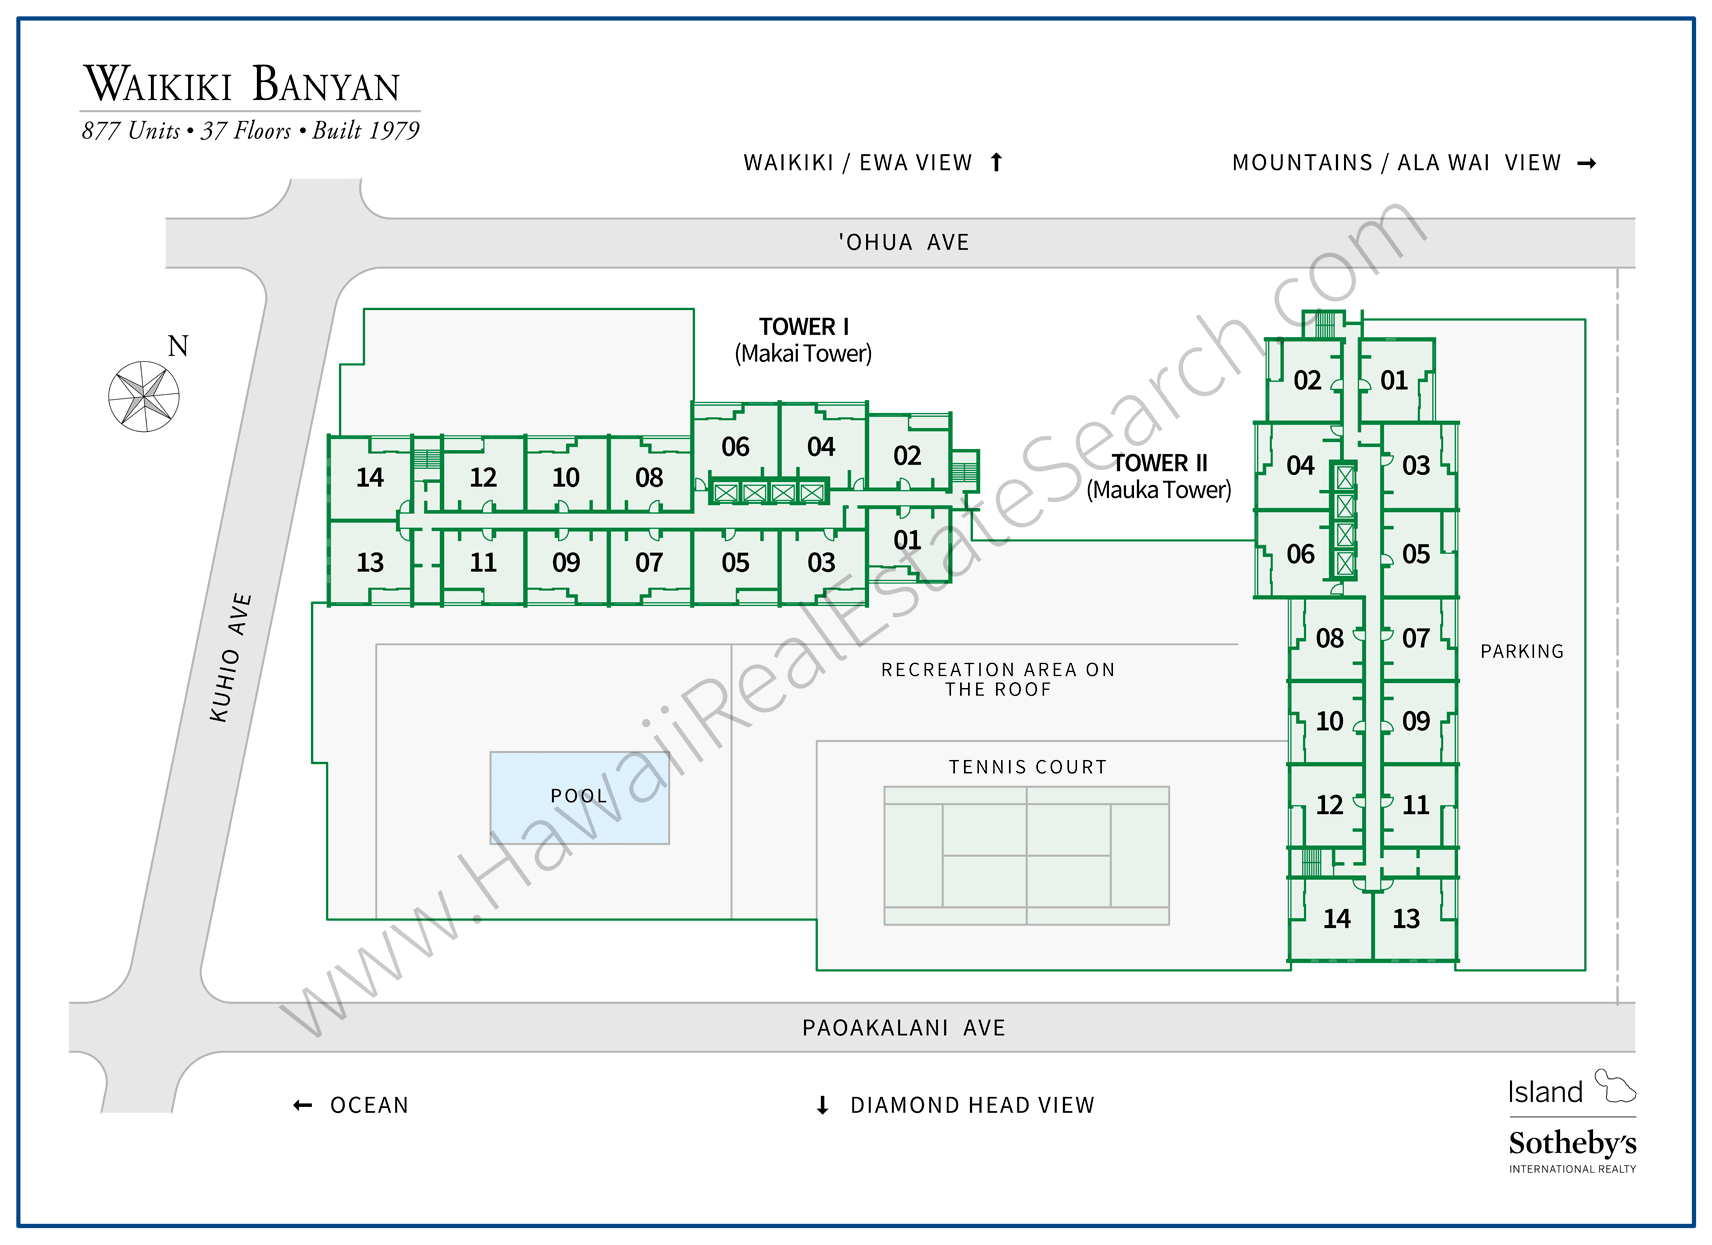 Waikiki Banyan Map Updated